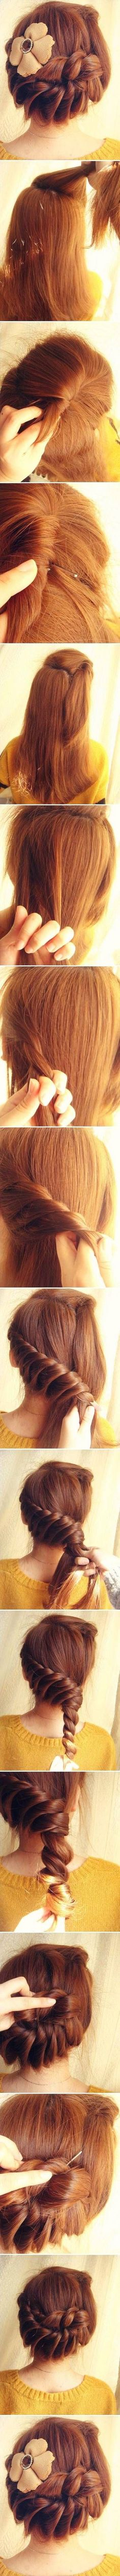 DIY hair Up-do...I think this would be cutie for certain functions